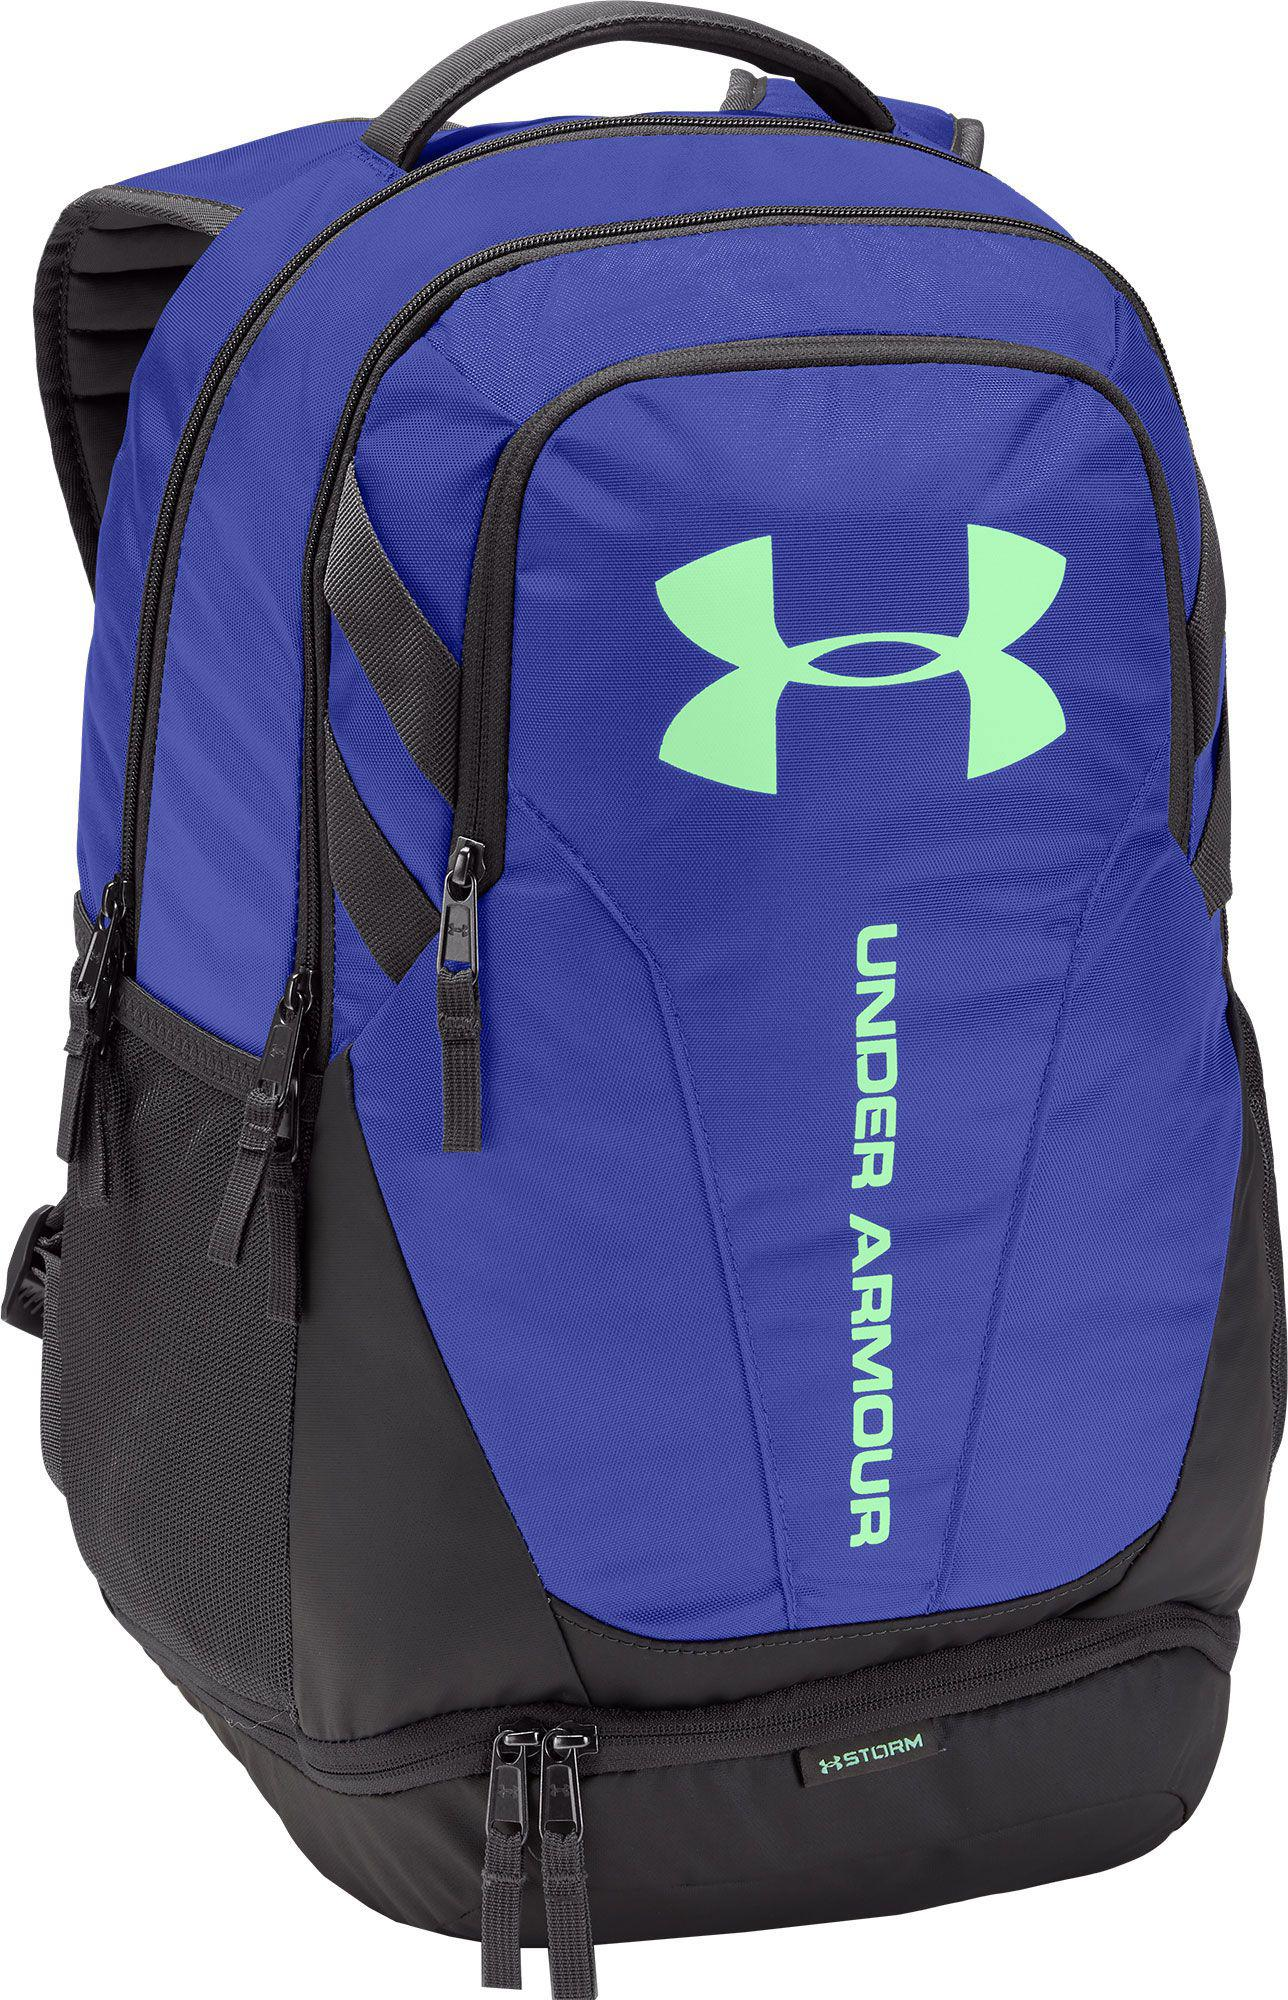 Lyst - Under Armour Hustle 3.0 Backpack in Purple for Men d79720418ed72